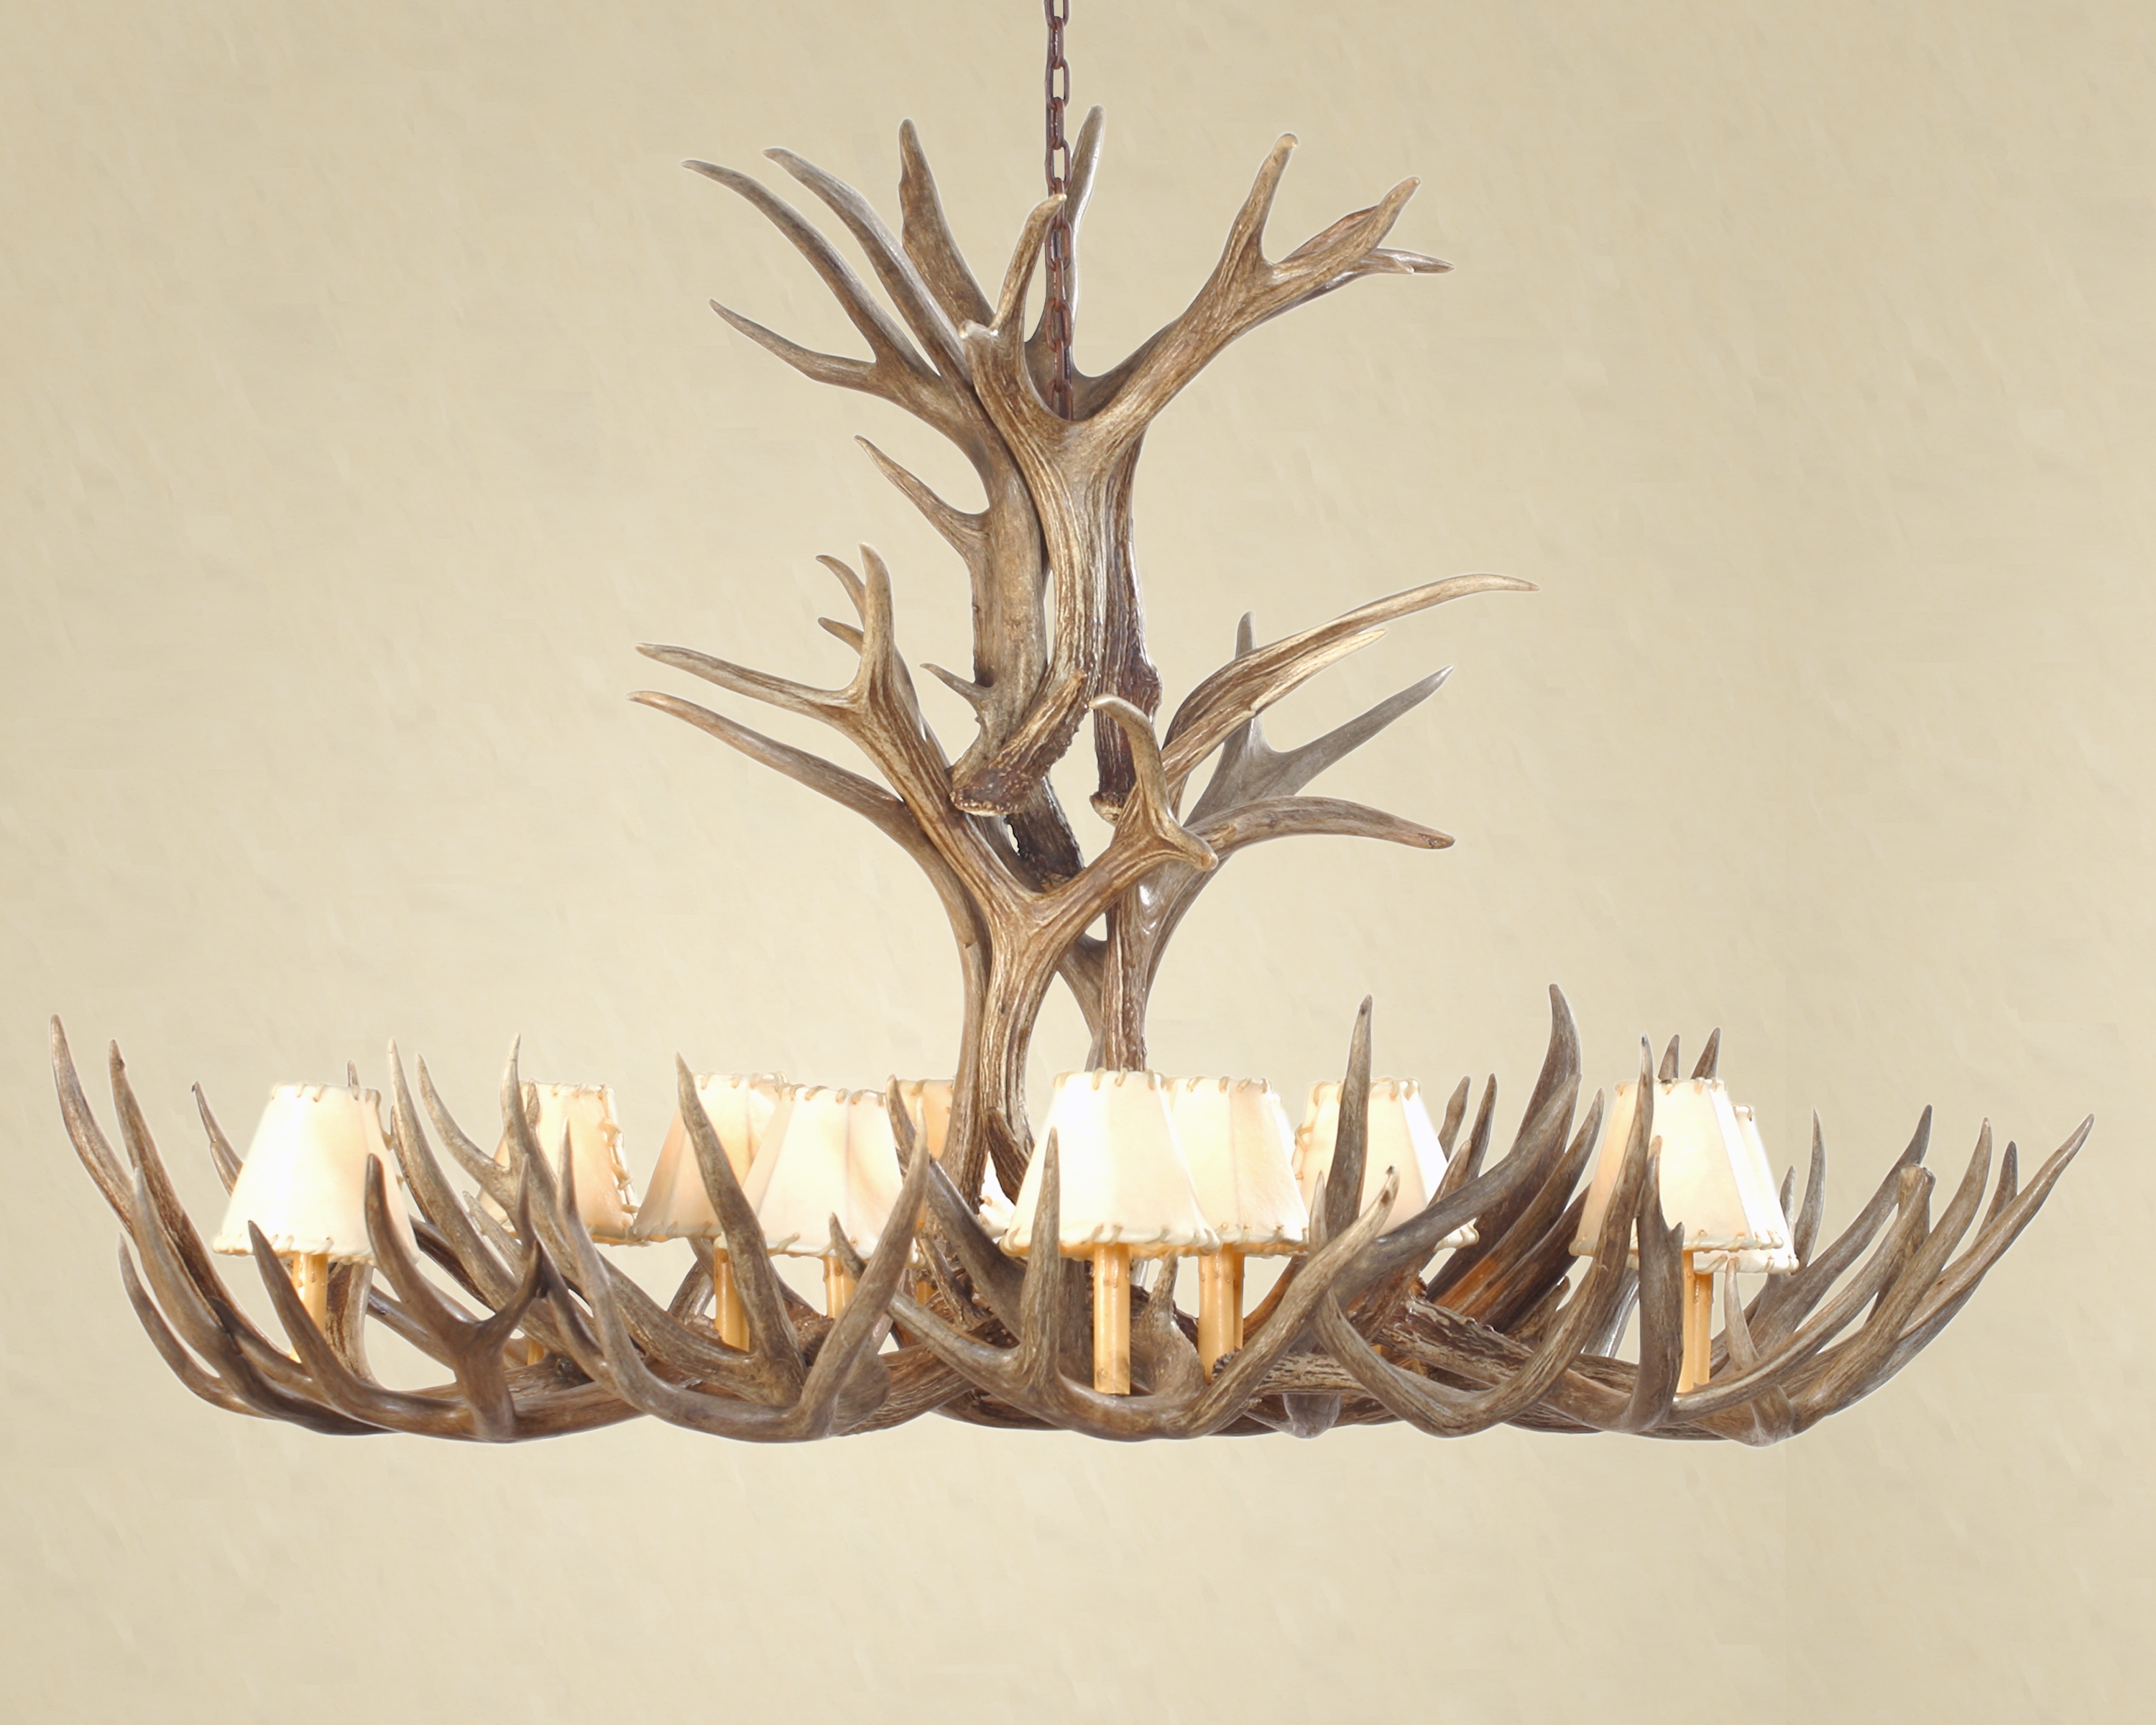 Essentials To Know Before You Buy An Antler Chandelier Inside Large Antler Chandelier (Image 6 of 15)